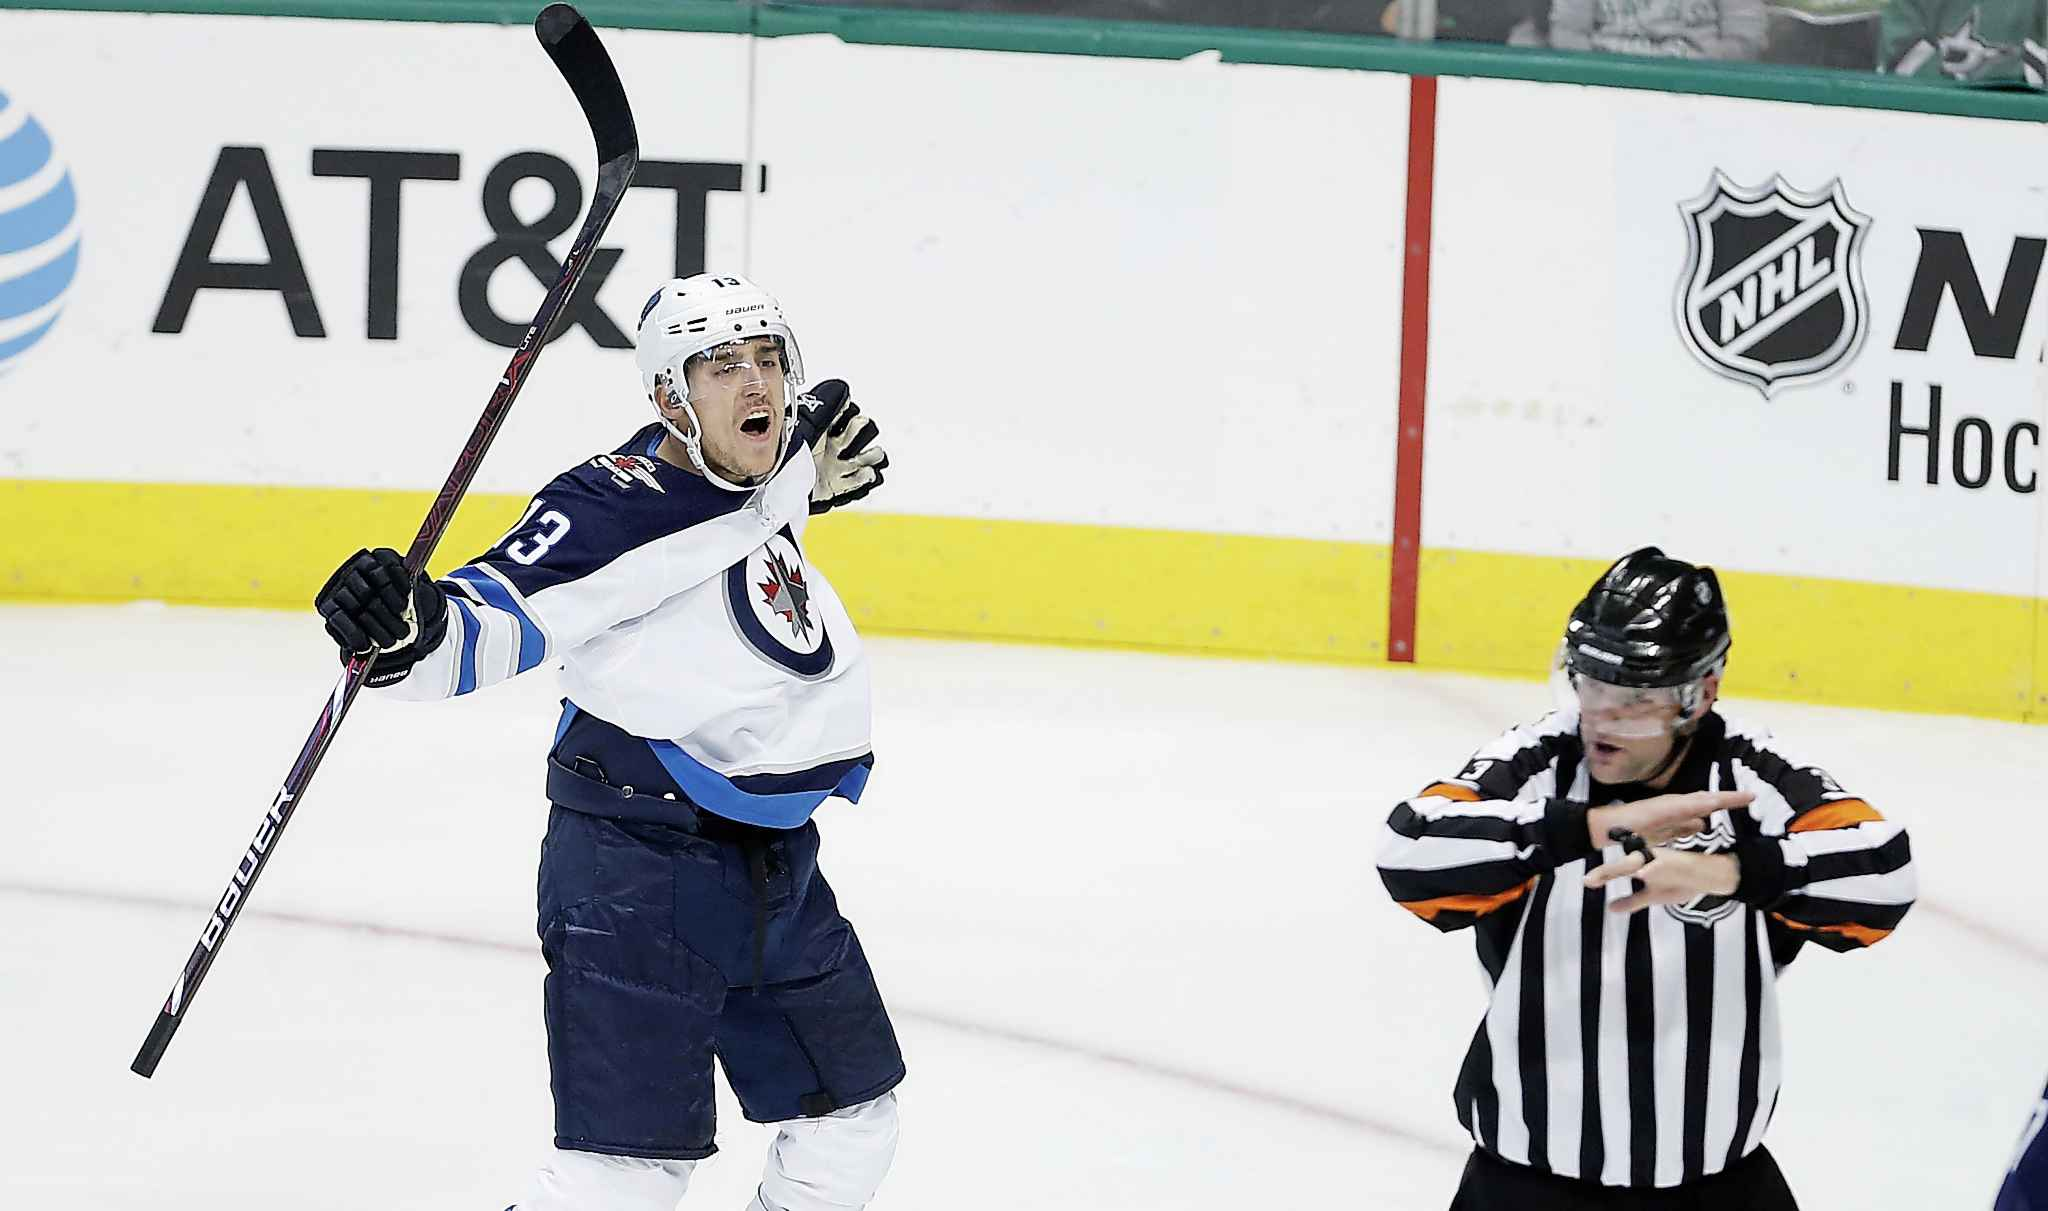 Winnipeg Jets forward Brandon Tanev (13) reacts as referee Chris Schlenker (3) waves off his goal for goaltender interference during the first period of an NHL hockey game against the Dallas Stars, Saturday, Oct. 6, 2018, in Dallas.